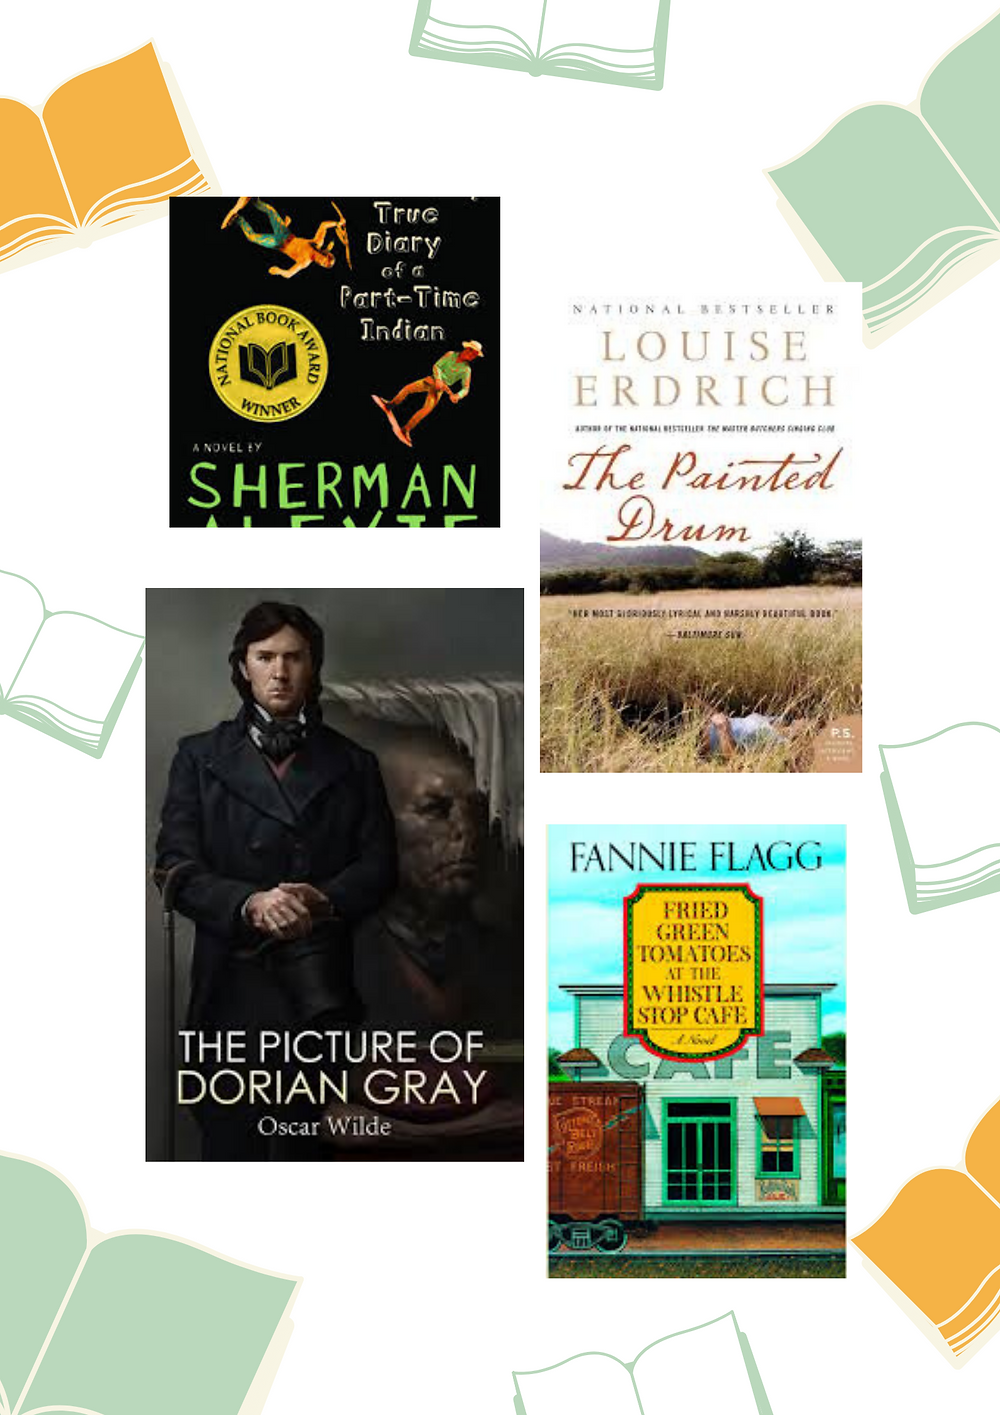 Image of book covers for The Absolutely True Diary of a Part-Time Indian, The Painted Drum, The Picture of Dorian Gray, and Fried Green Tomatoes at the Whistle Stop Café